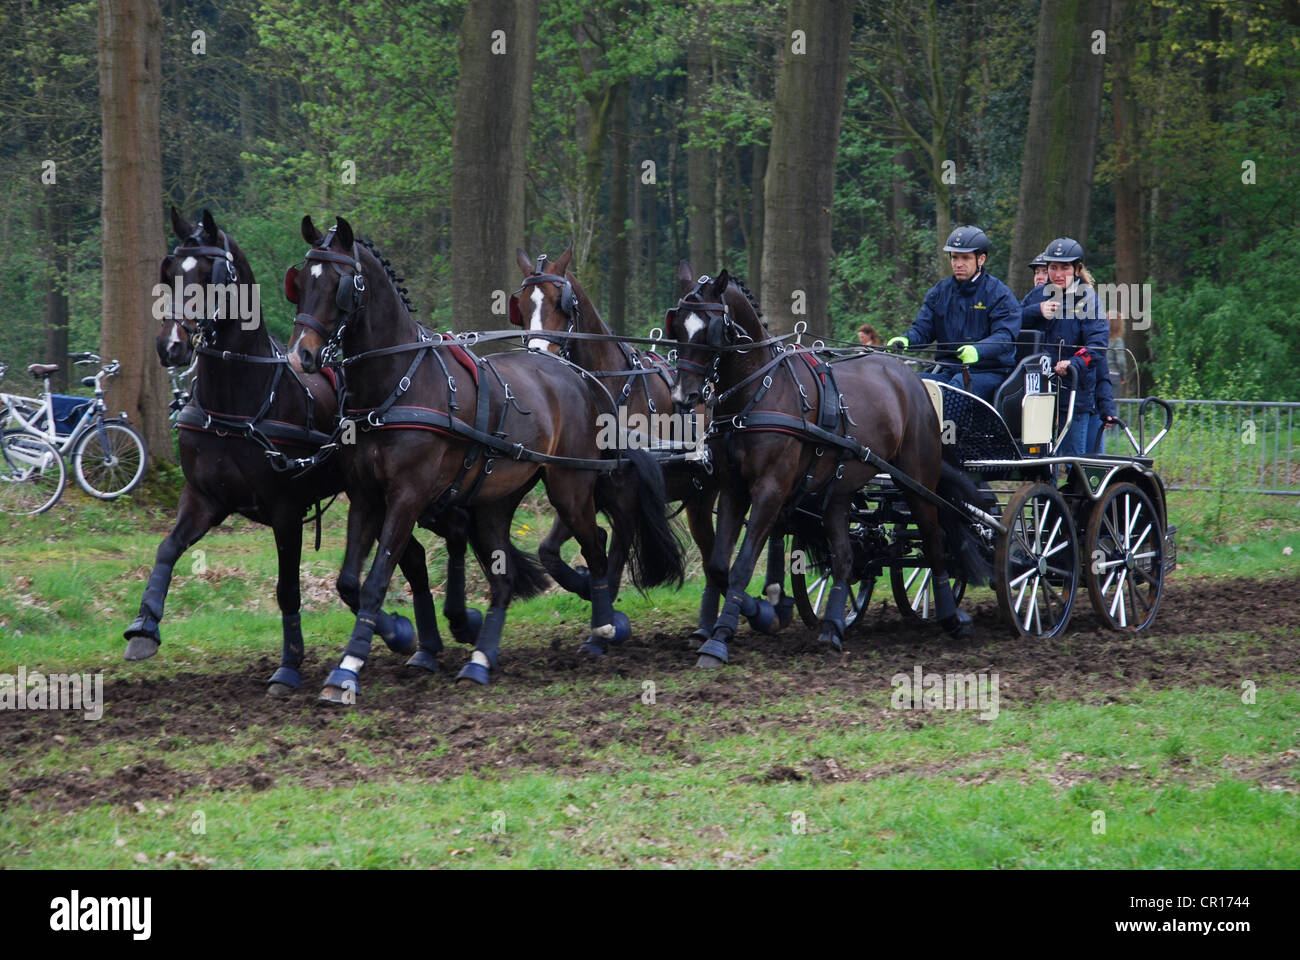 Carriage racing championship in Horst Netherlands - Stock Image